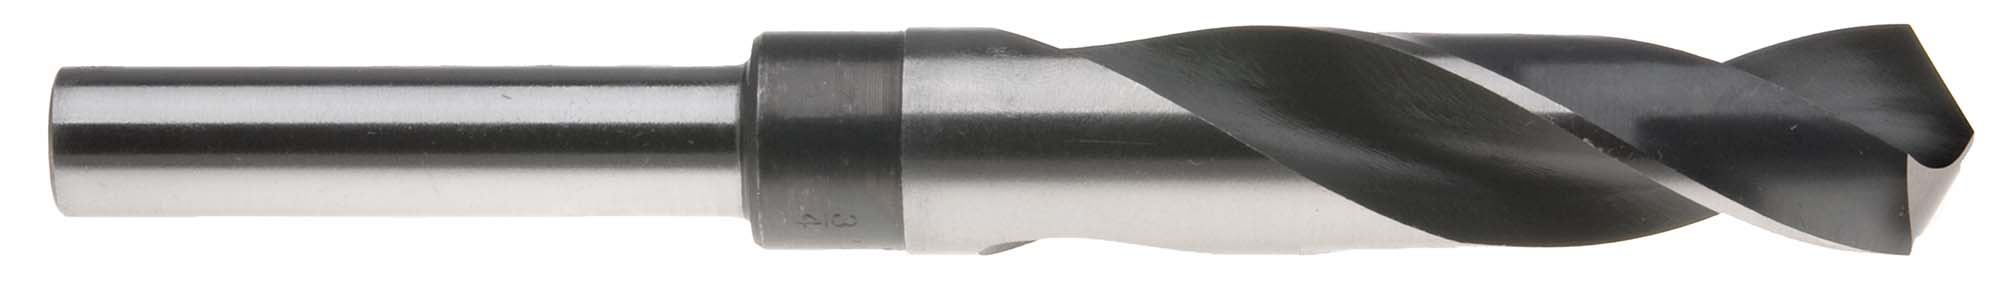 "39/64"" USA Drill Bit with 1/2"" Shank (S+D Type) High Speed Steel"